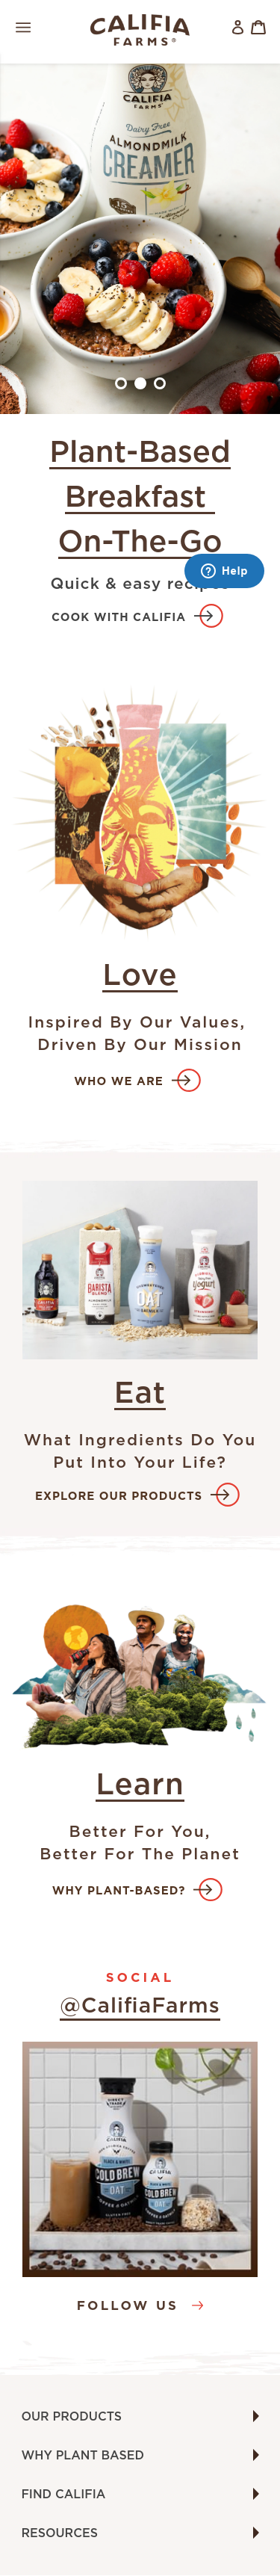 Example of Design for Food & Drink, Food, Mobile Landing Page by califiafarms.com | Mobile Landing Page Design